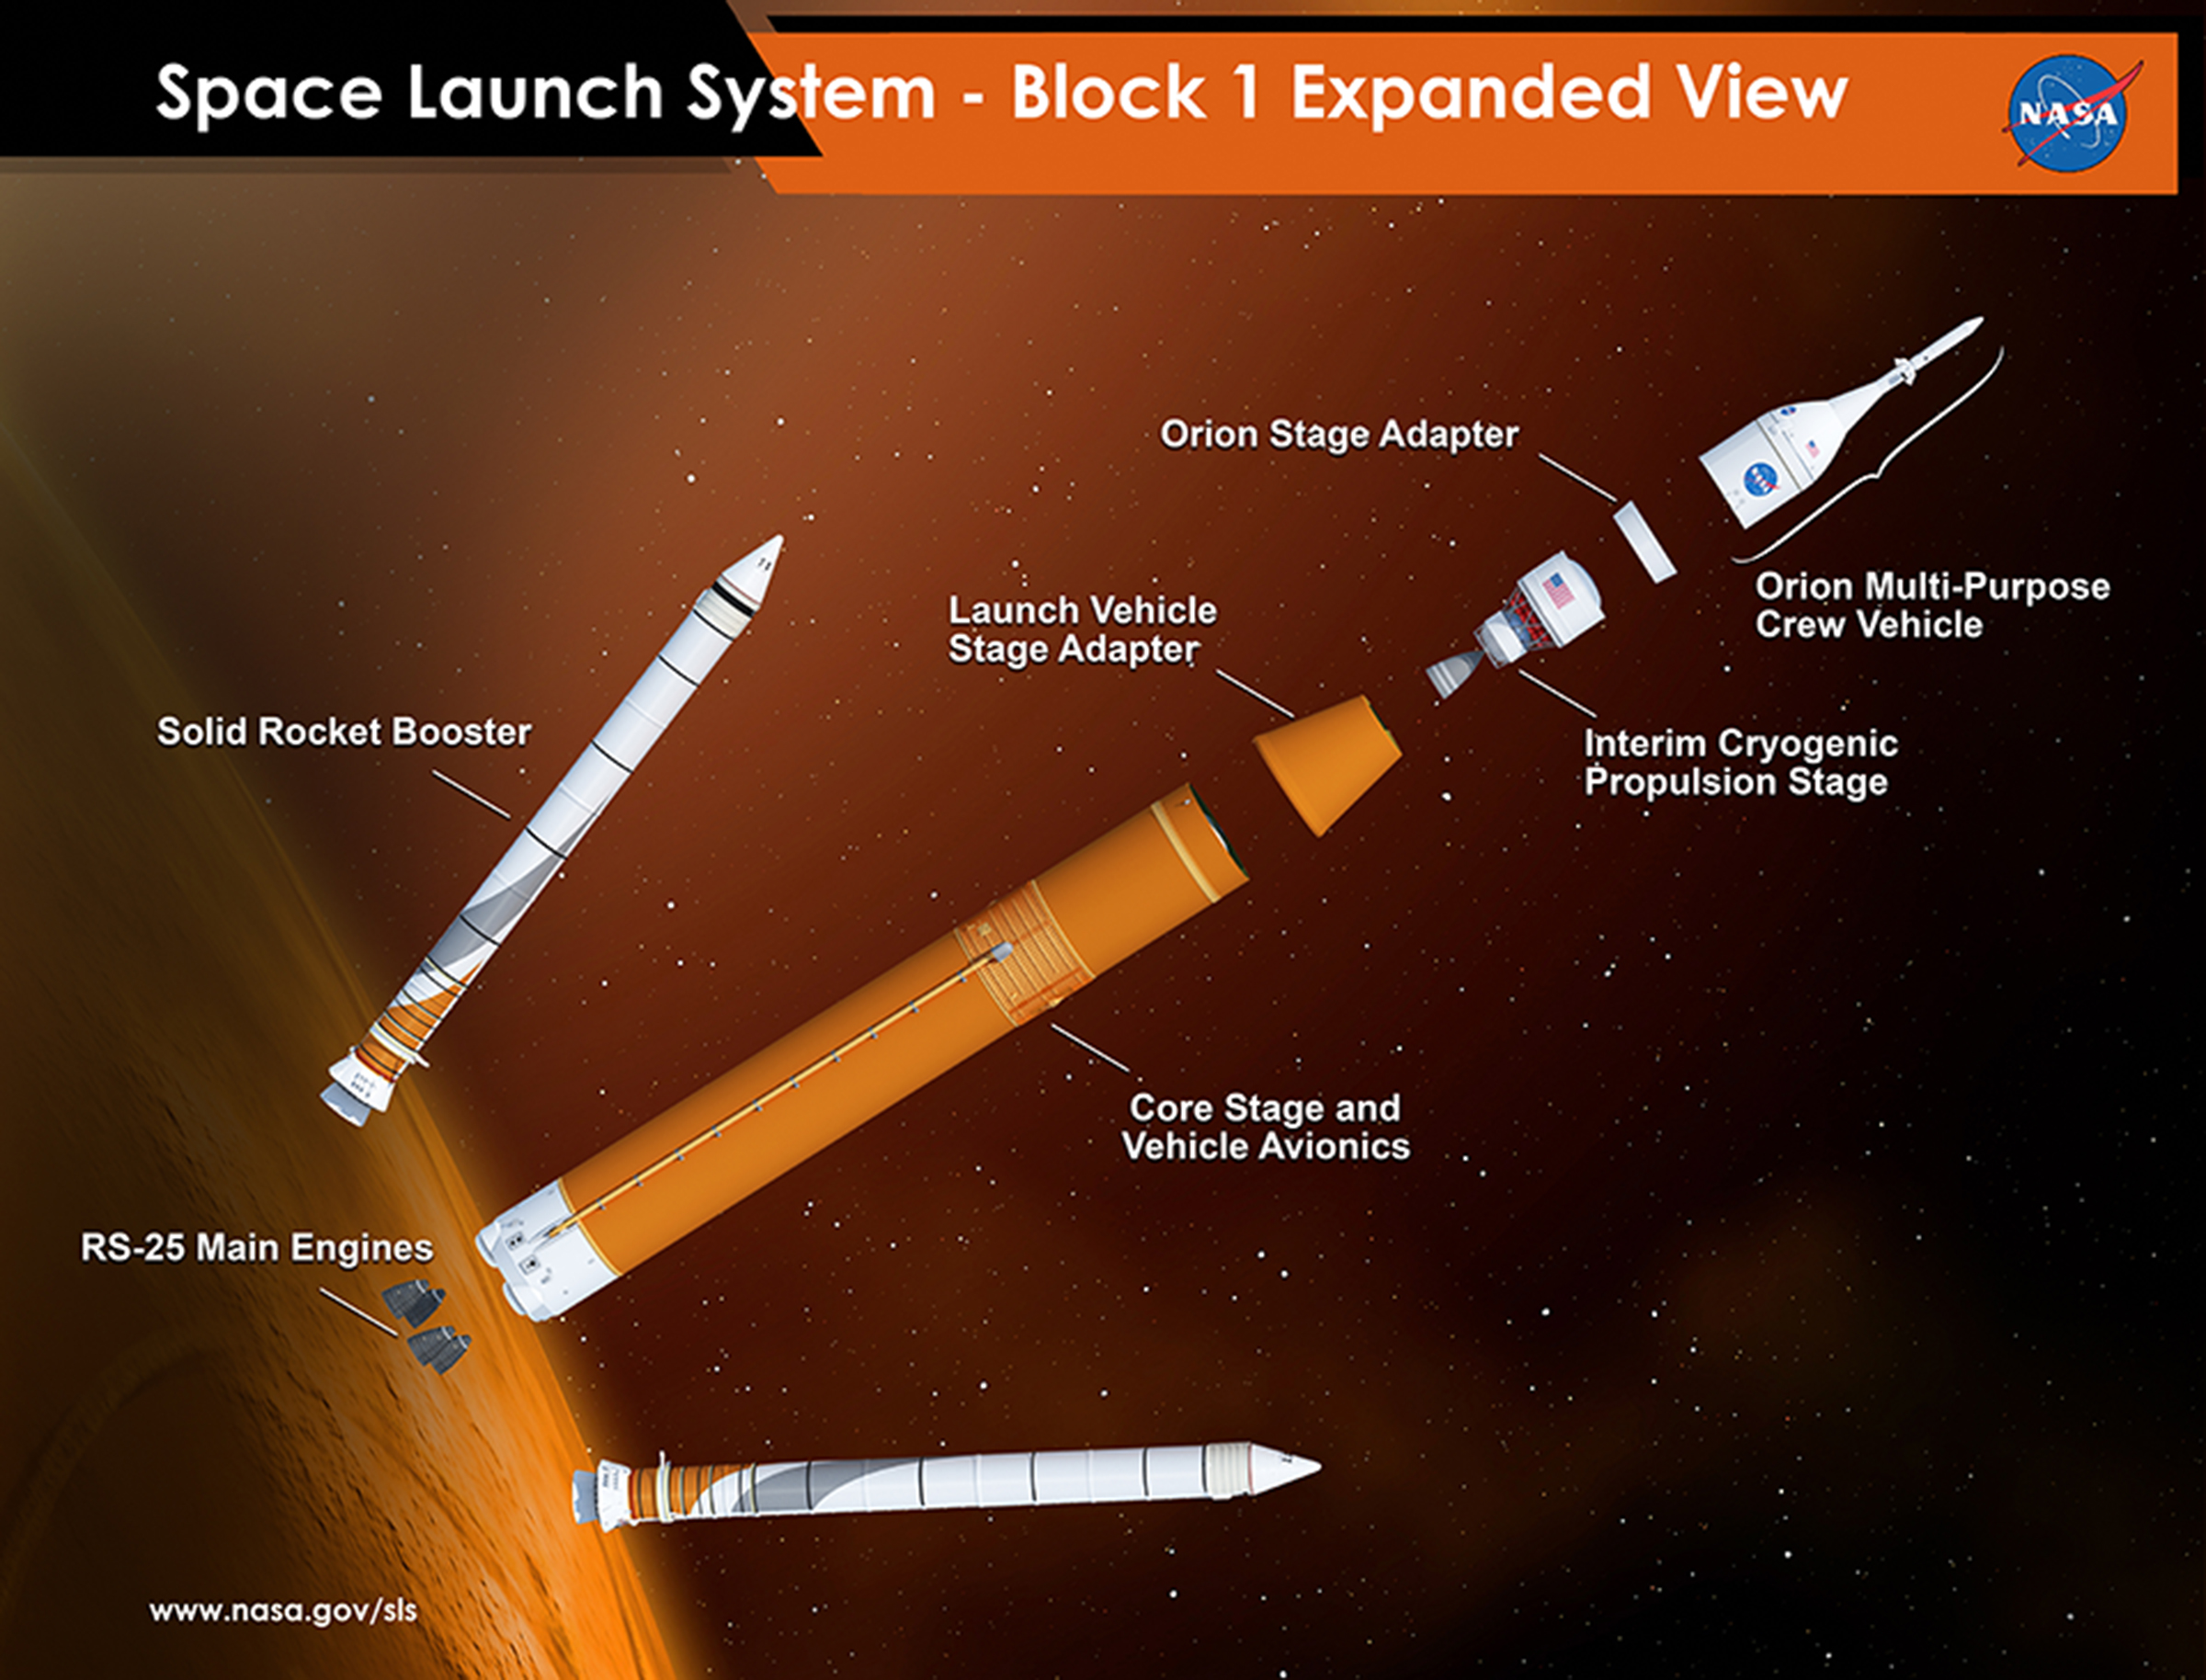 nasa sls hd - photo #20